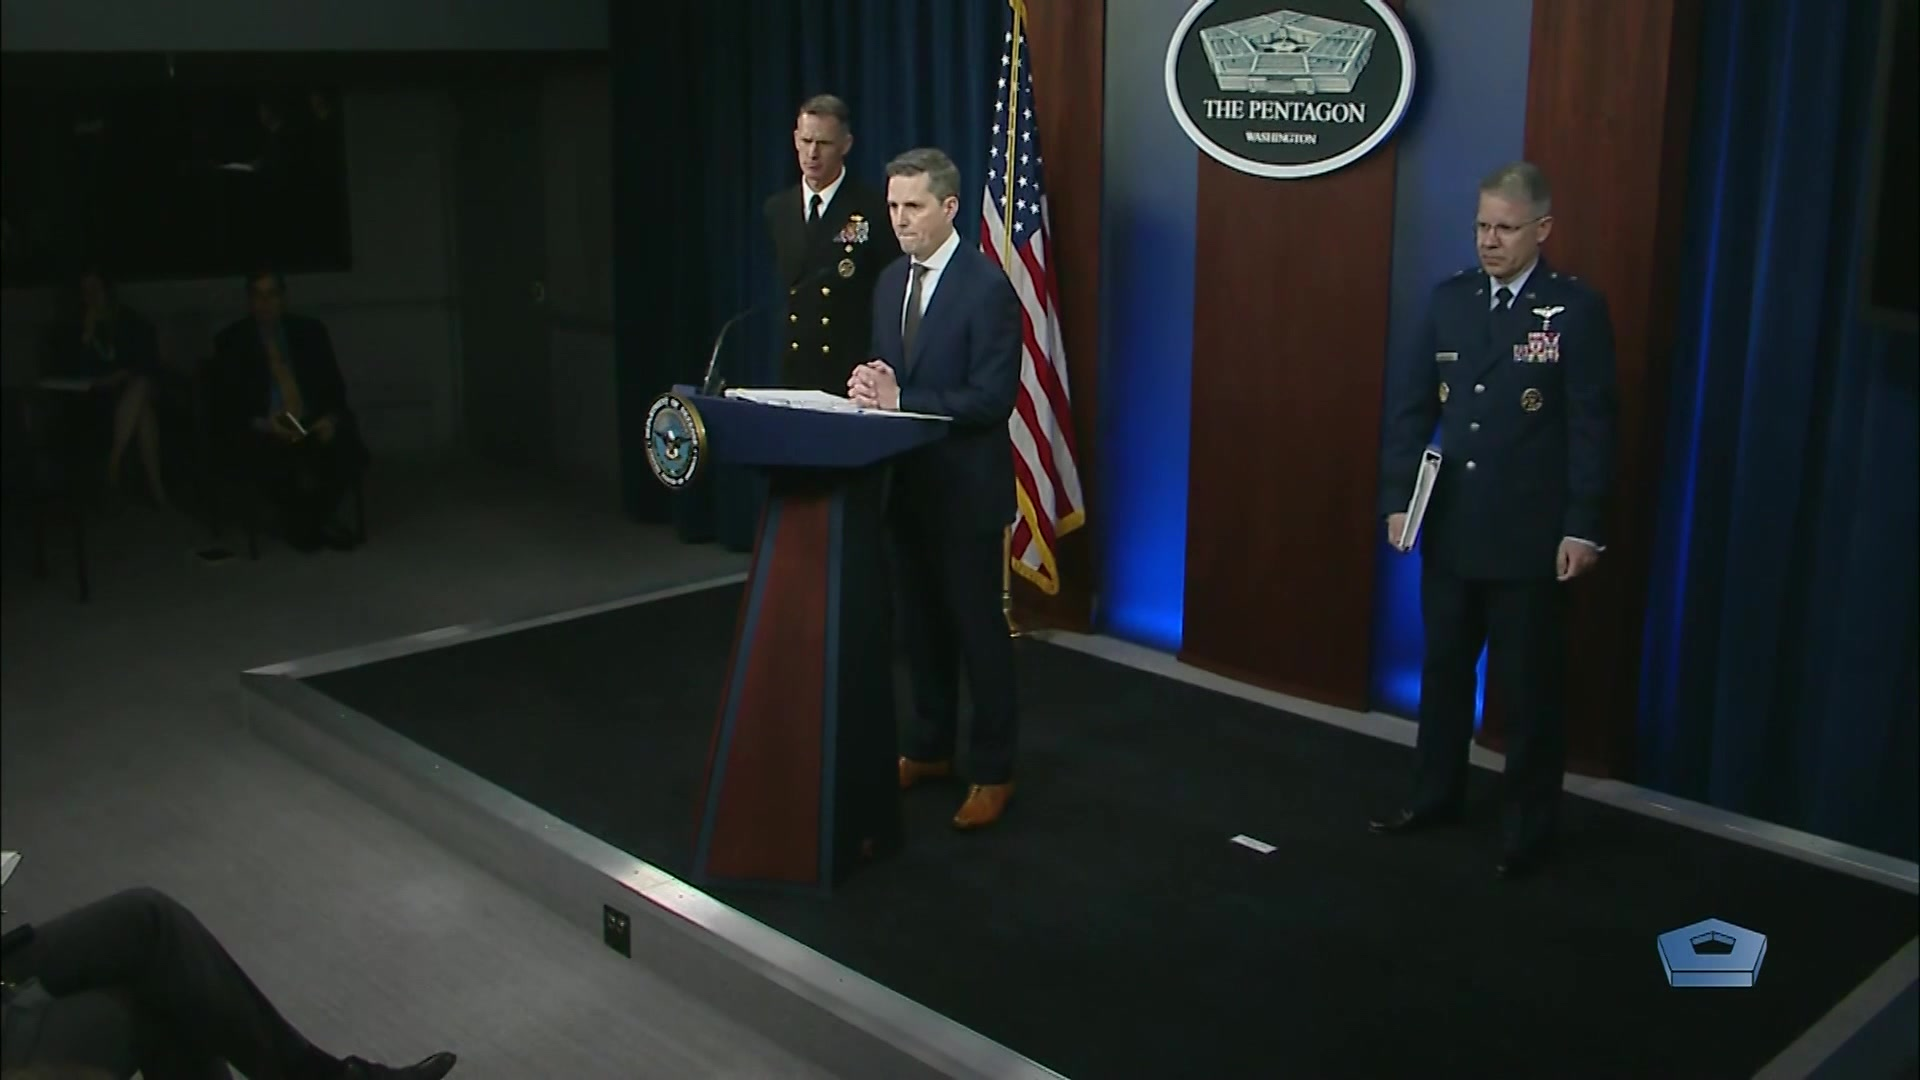 Assistant Defense Secretary for Public Affairs Jonathan Rath Hoffman and Navy Rear Adm. William D. Byrne Jr., Joint Staff vice director and and Air Force Brig. Gen. Paul A. Friedrichs, Joint Staff Surgeon, hold a news conference at the Pentagon, March 10, 2020.